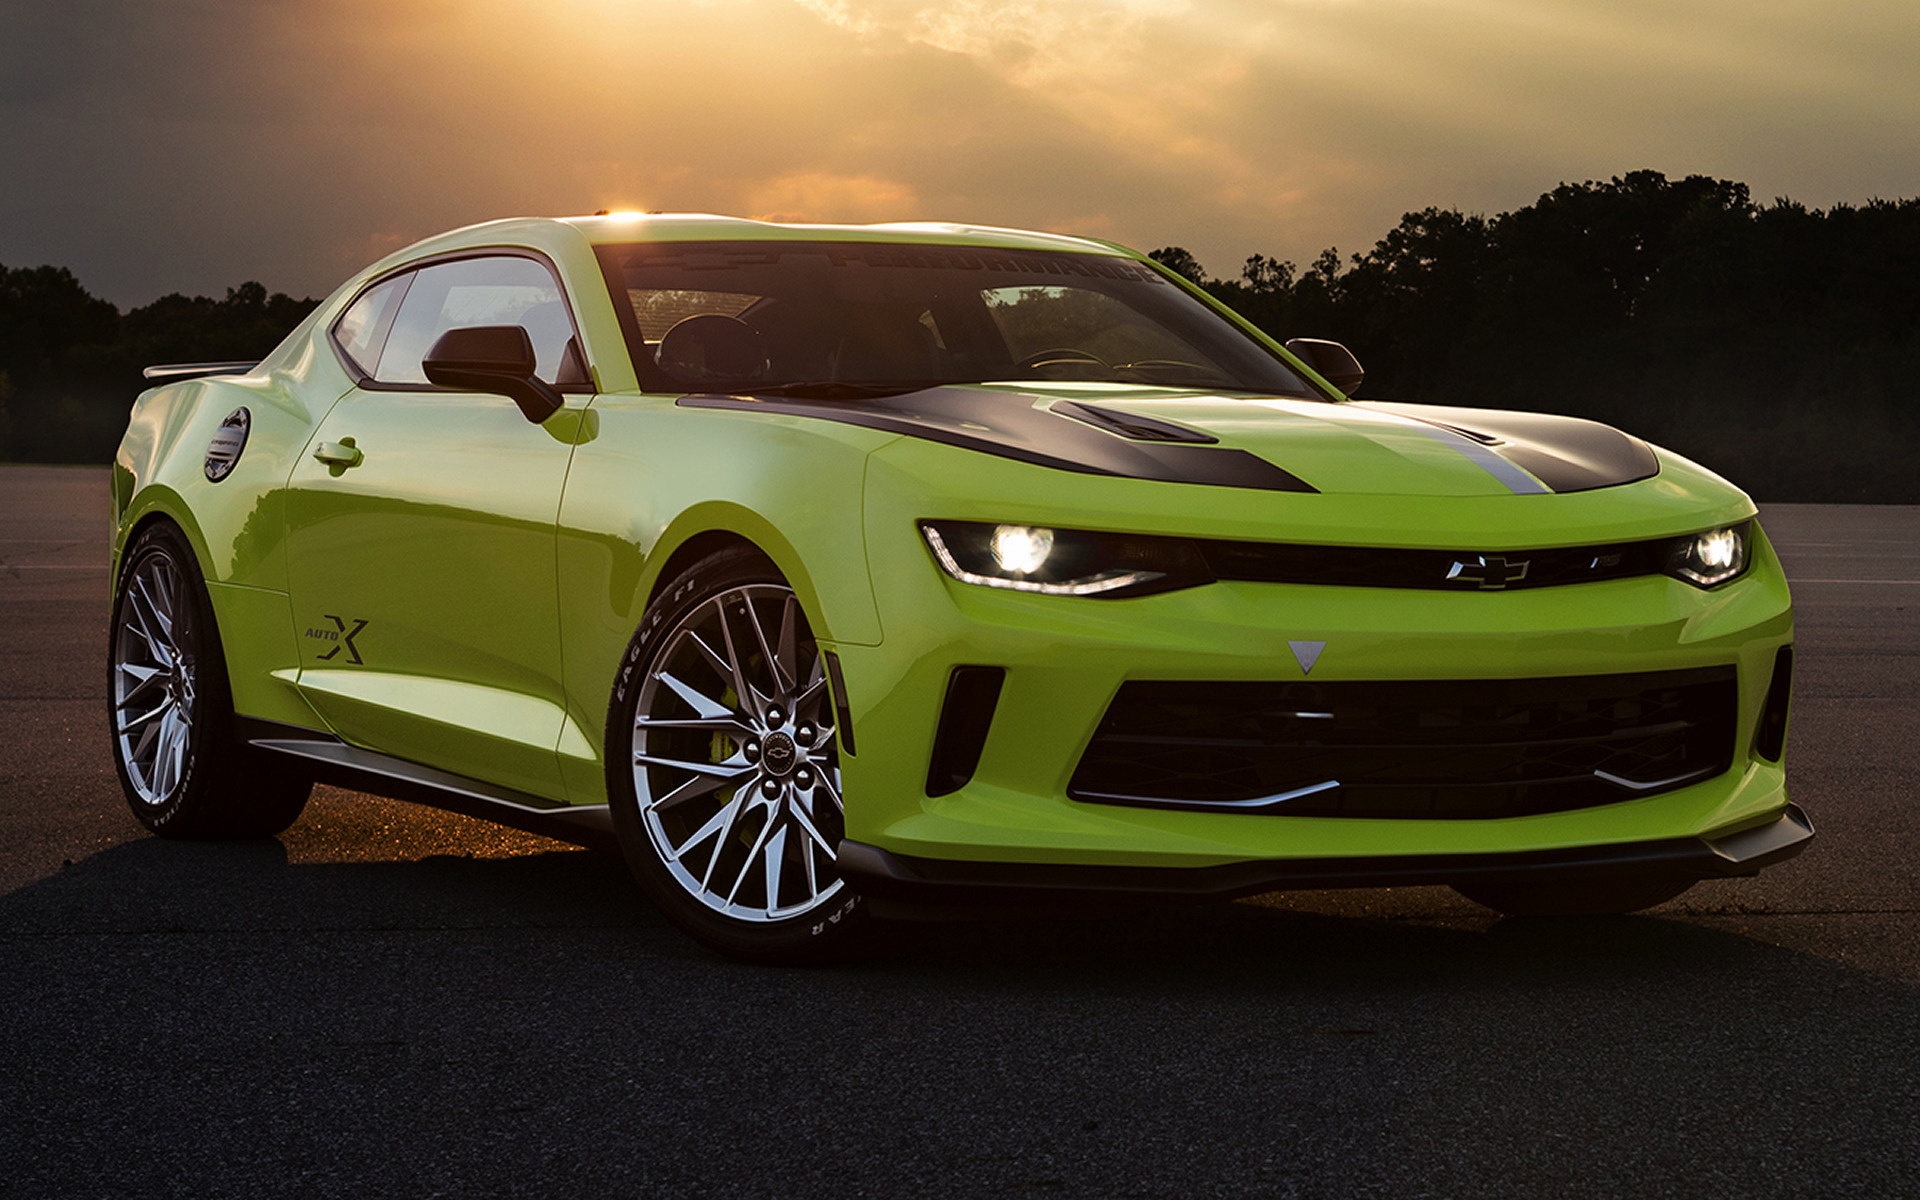 2016 Camaro Concept >> Chevrolet Camaro Turbo AutoX Concept (2016) Wallpapers and HD Images - Car Pixel